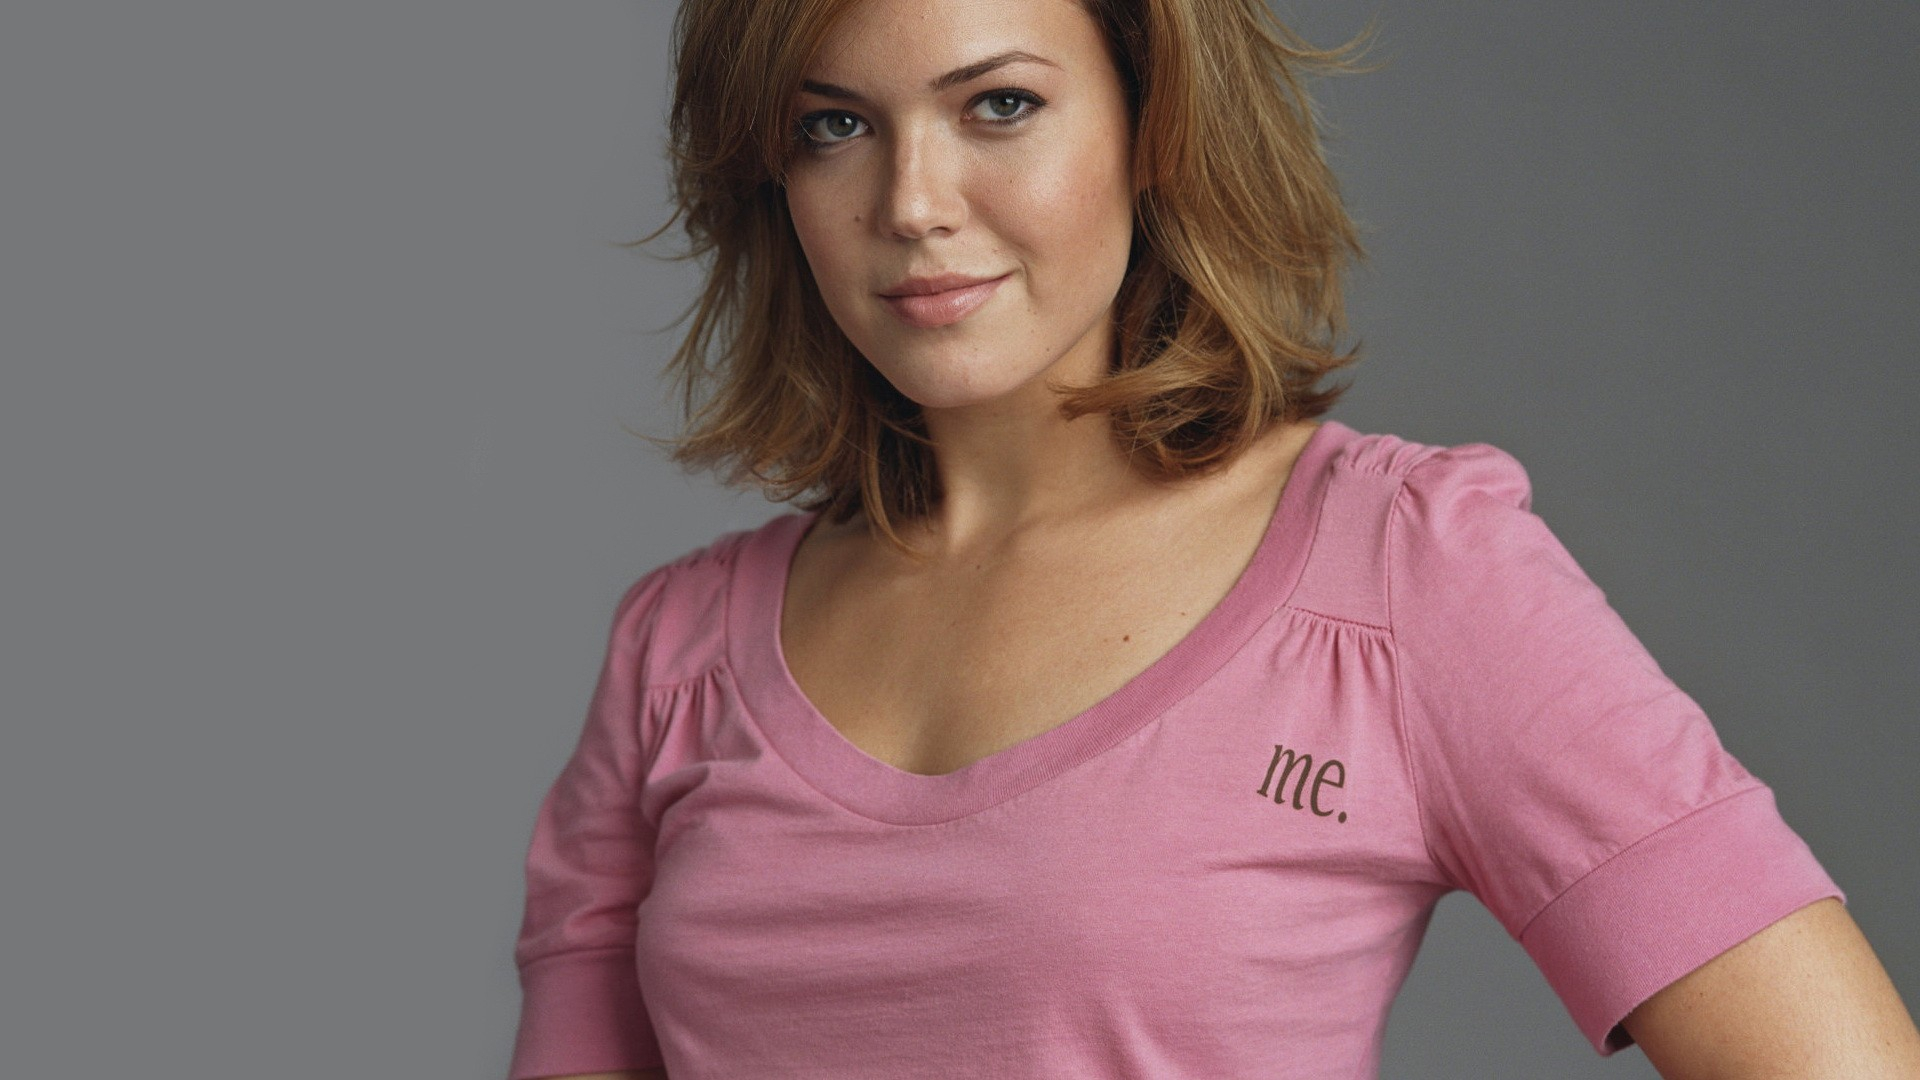 Mandy Moore High Definition Wallpapers